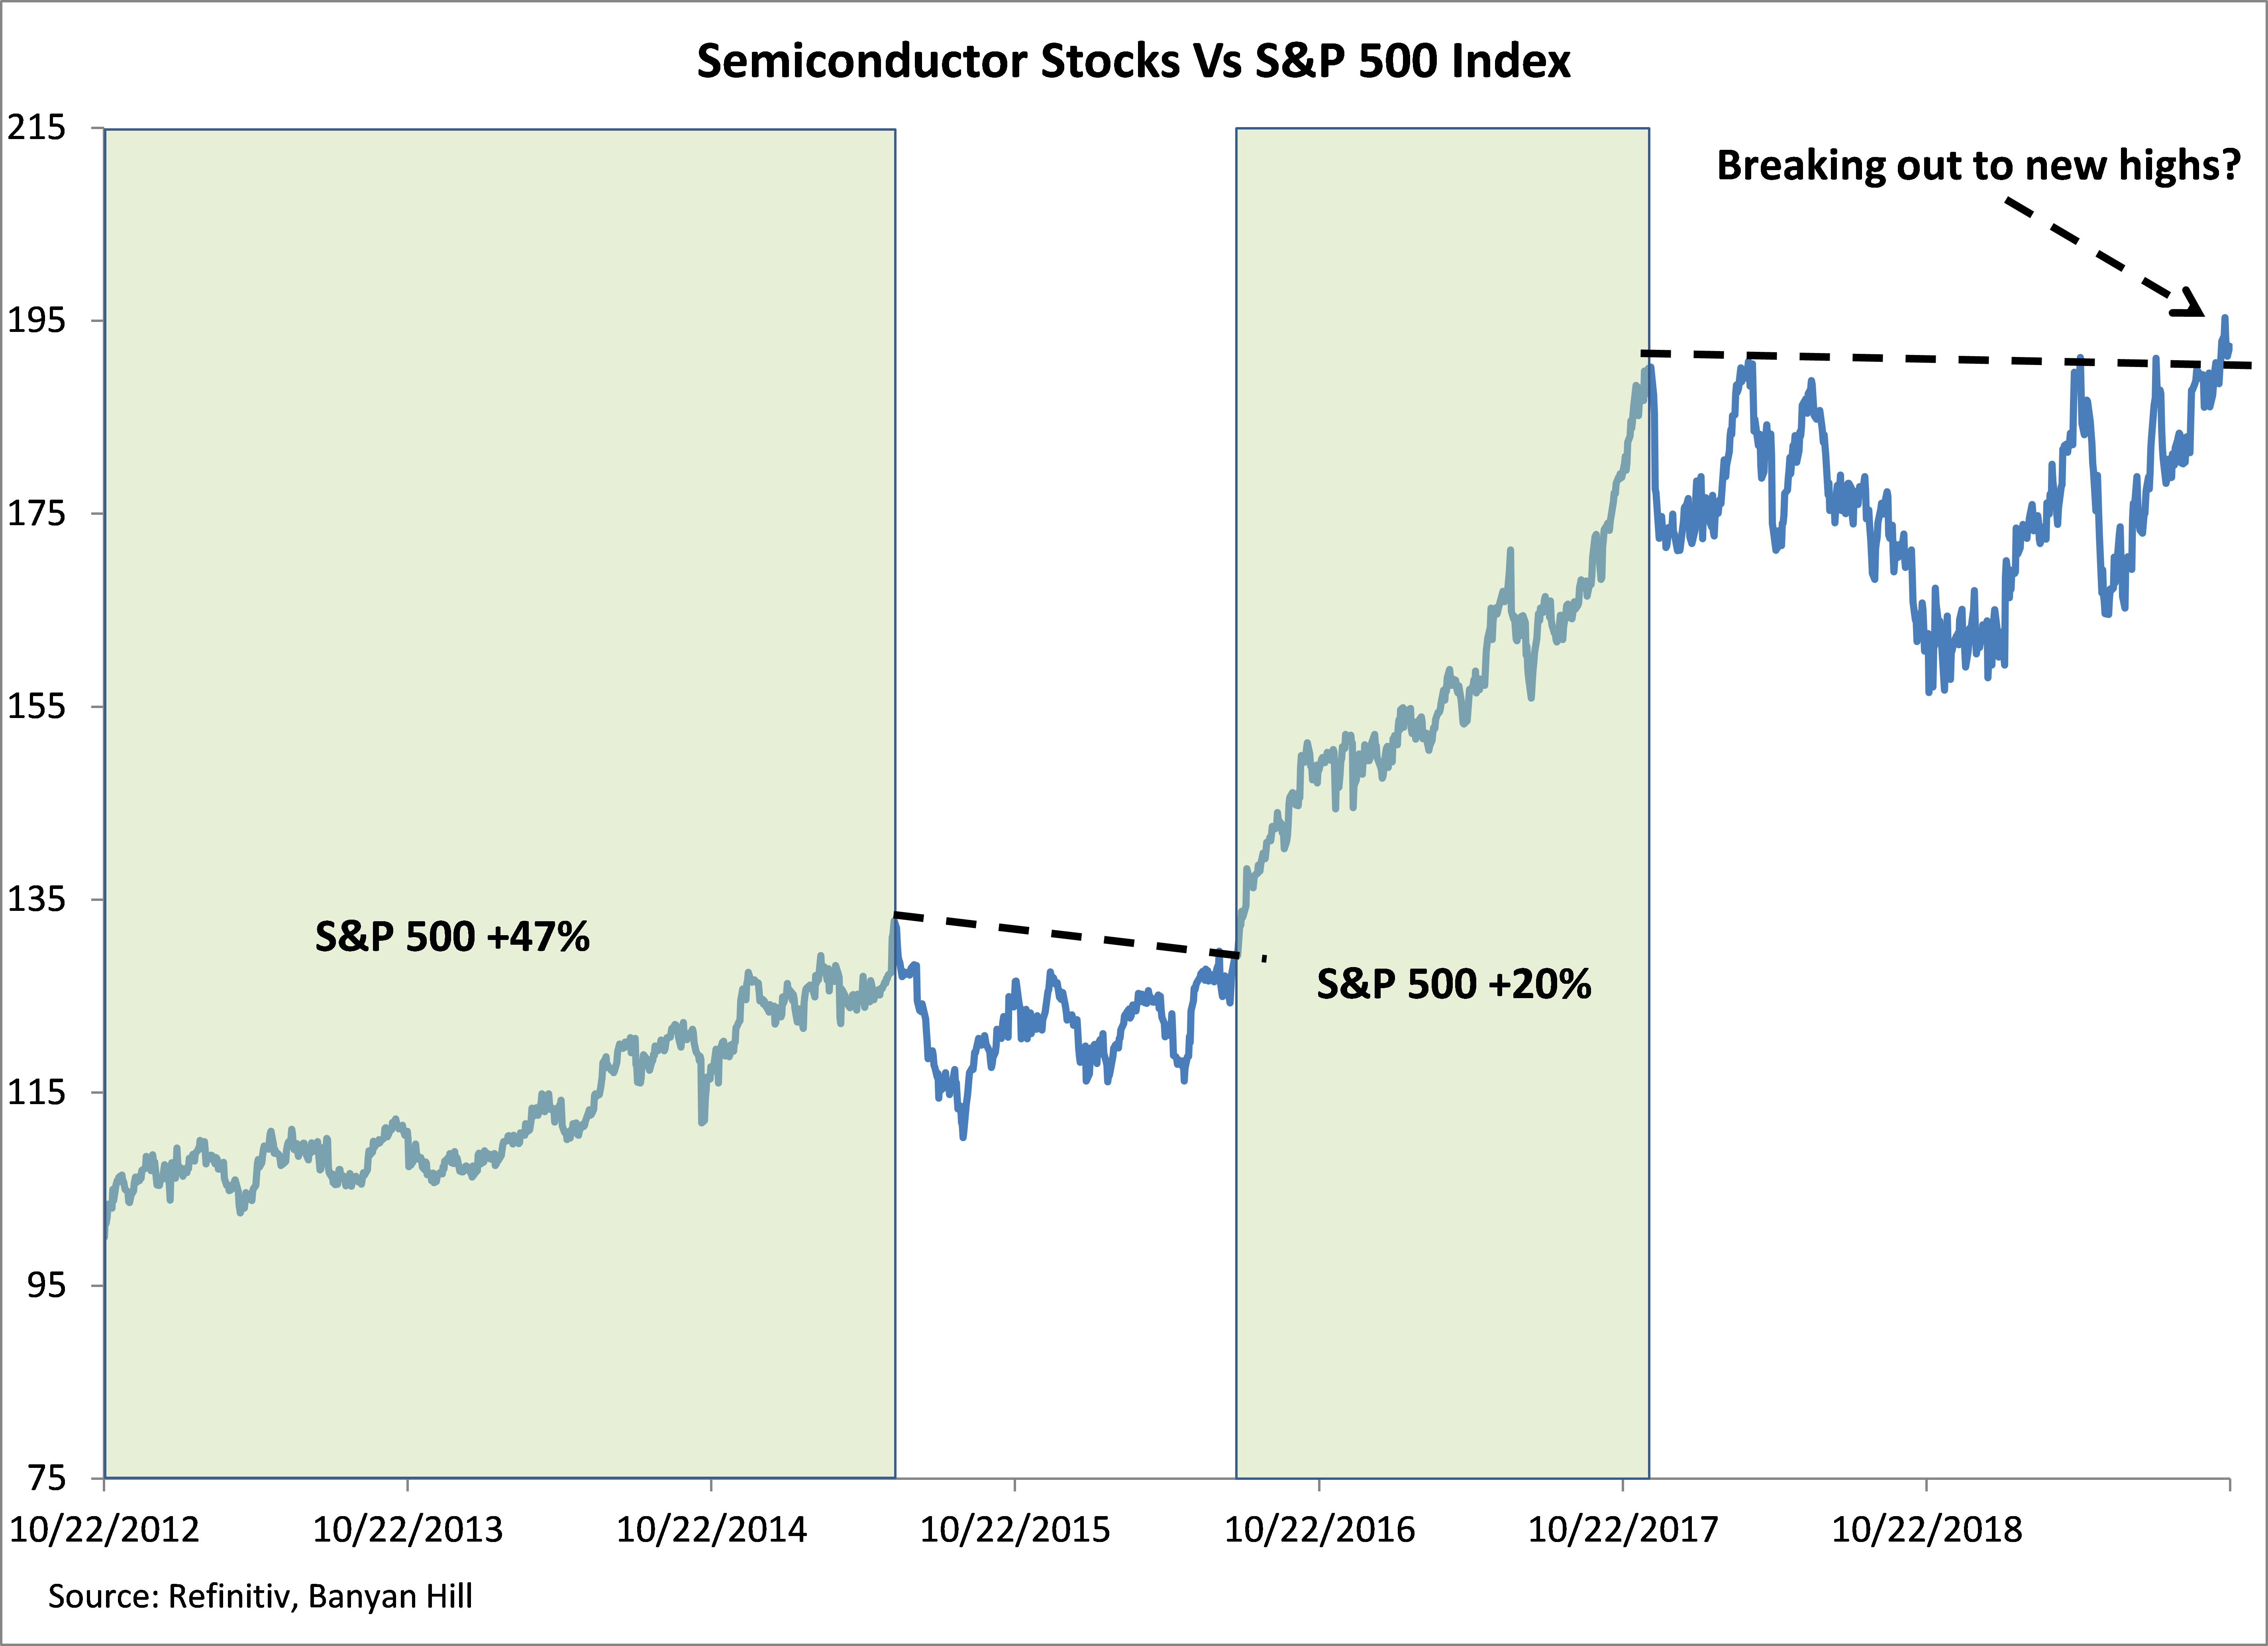 Not only does this chart suggest we might avoid a recession, it also hints that stocks may be in the early stages of a new bull market.